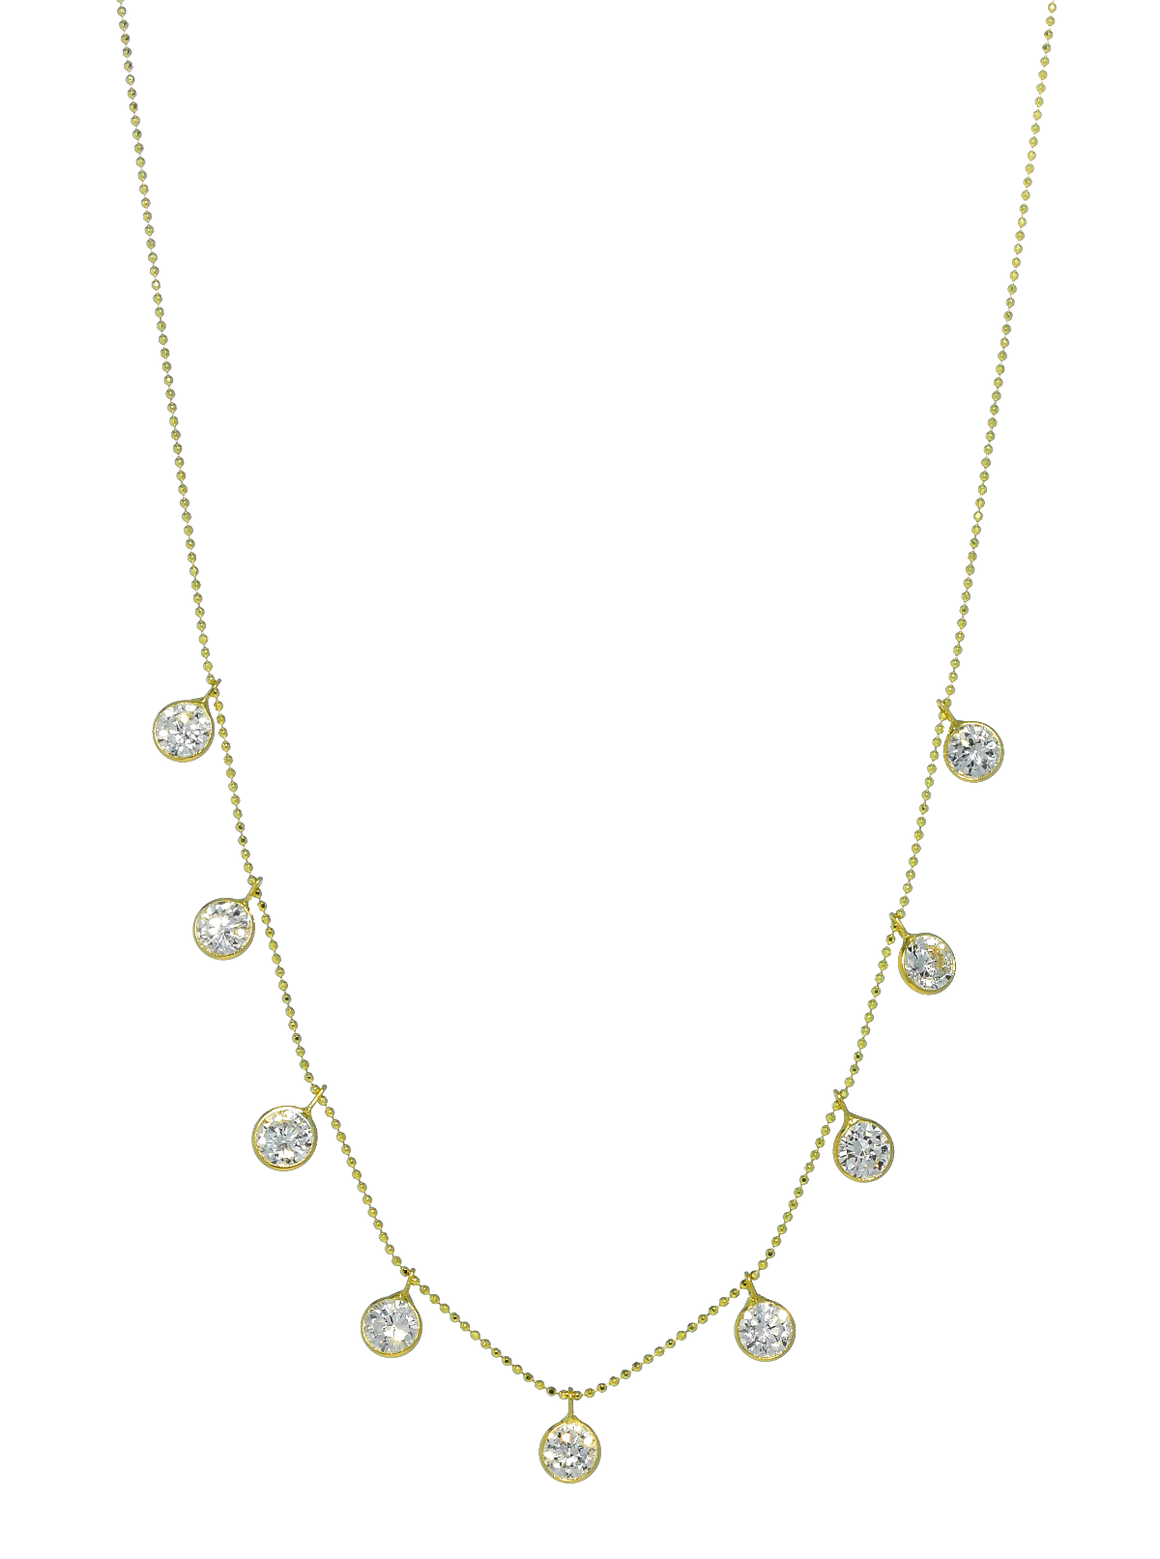 14K Yellow Gold with 9 Dangling CZ Stones Necklace - Anny Gabriella NY